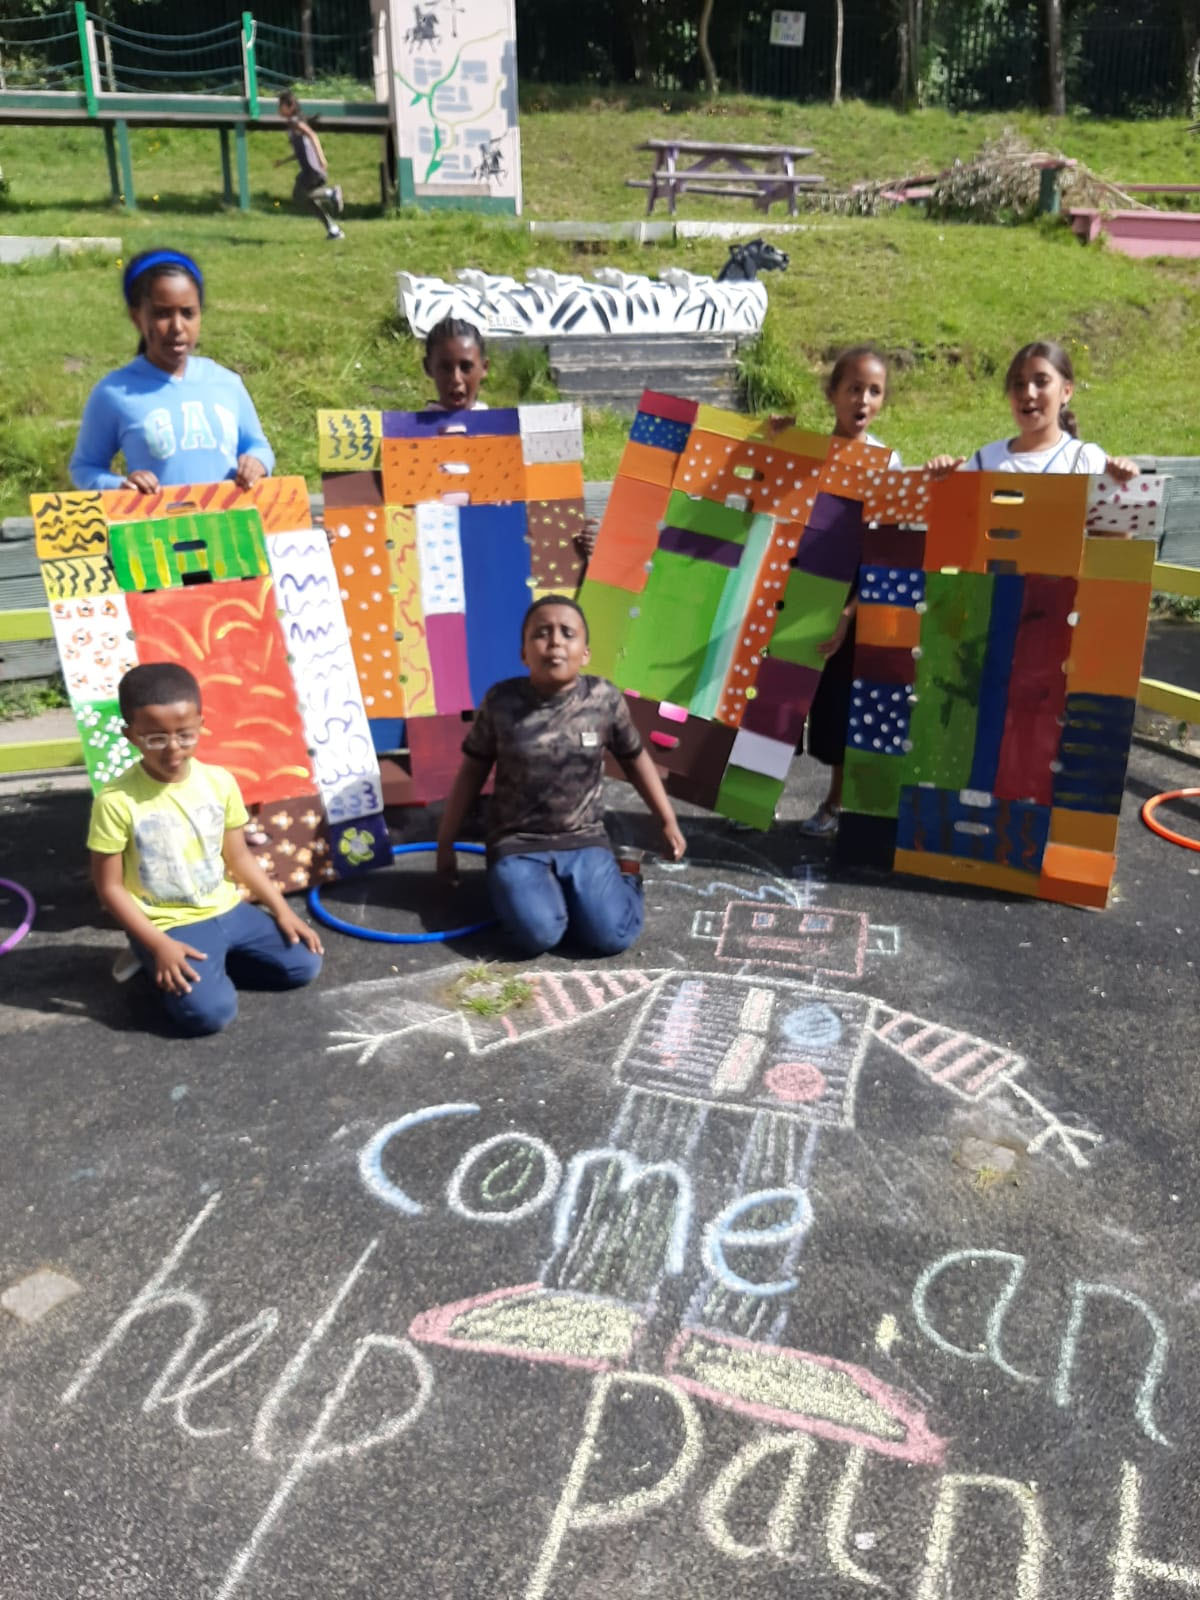 Adventure Playground – Come and help paint